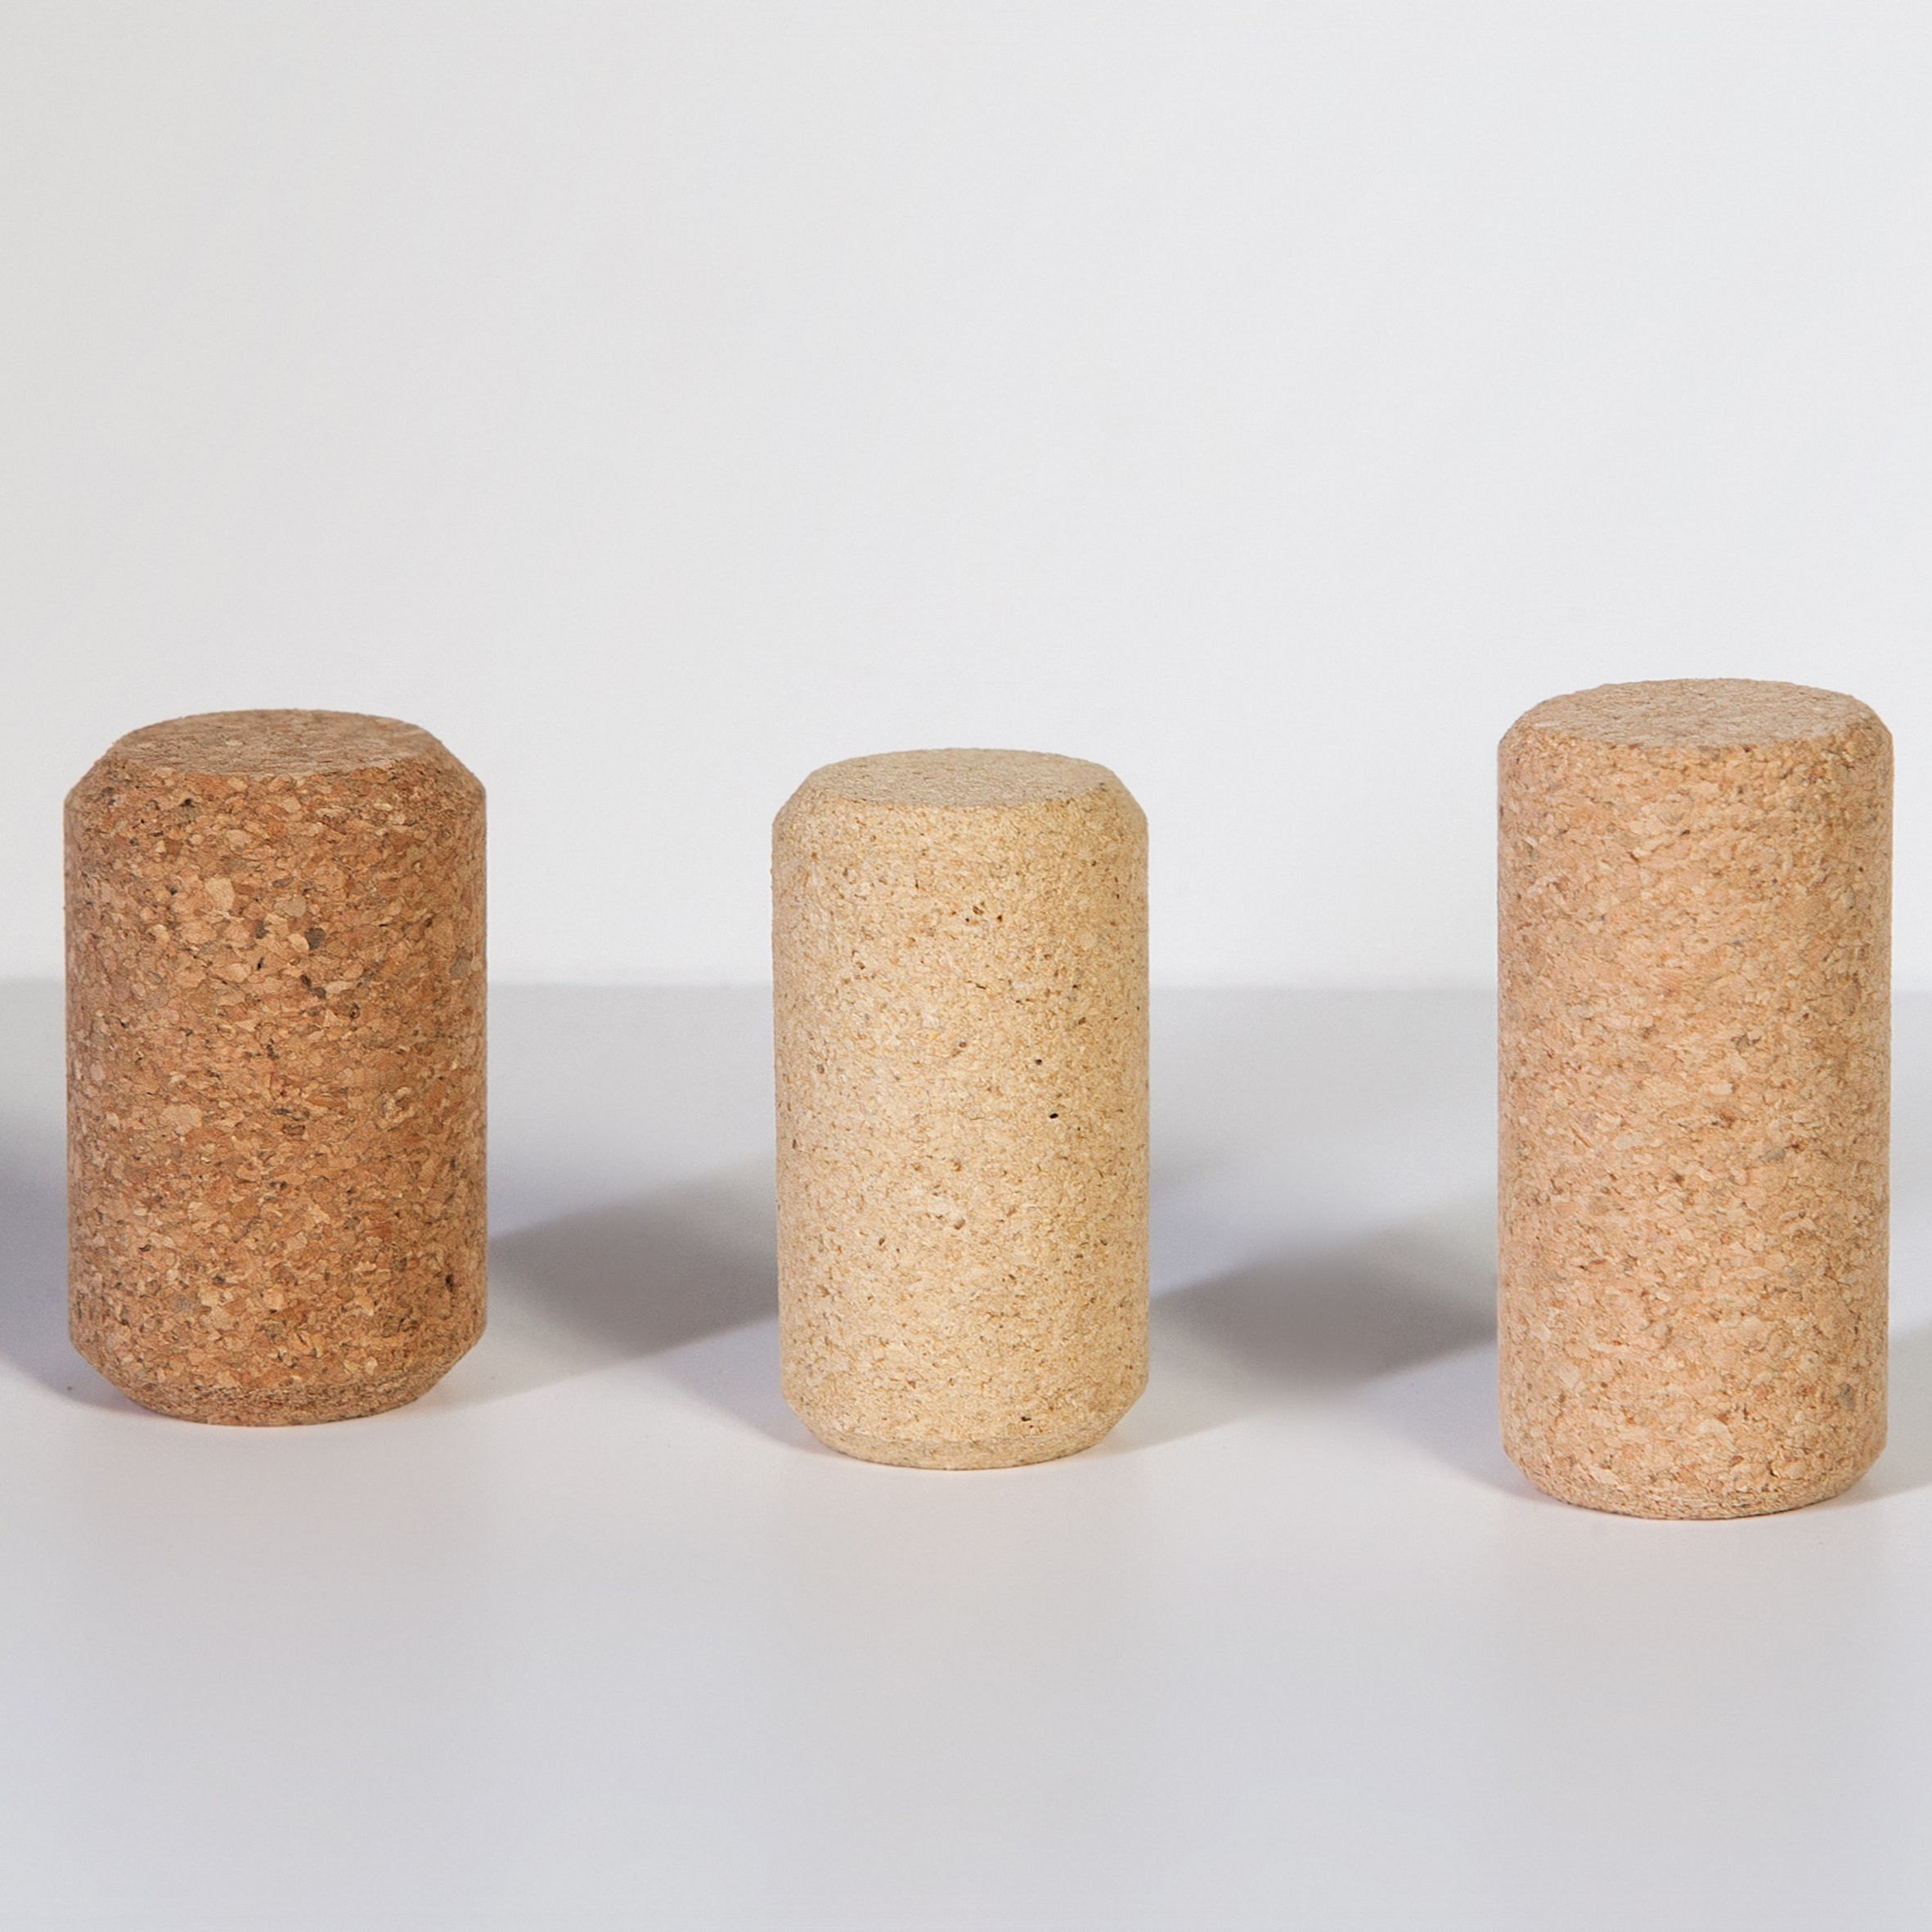 Agglomerated cork Closures for Champagne or fast consumption Wines